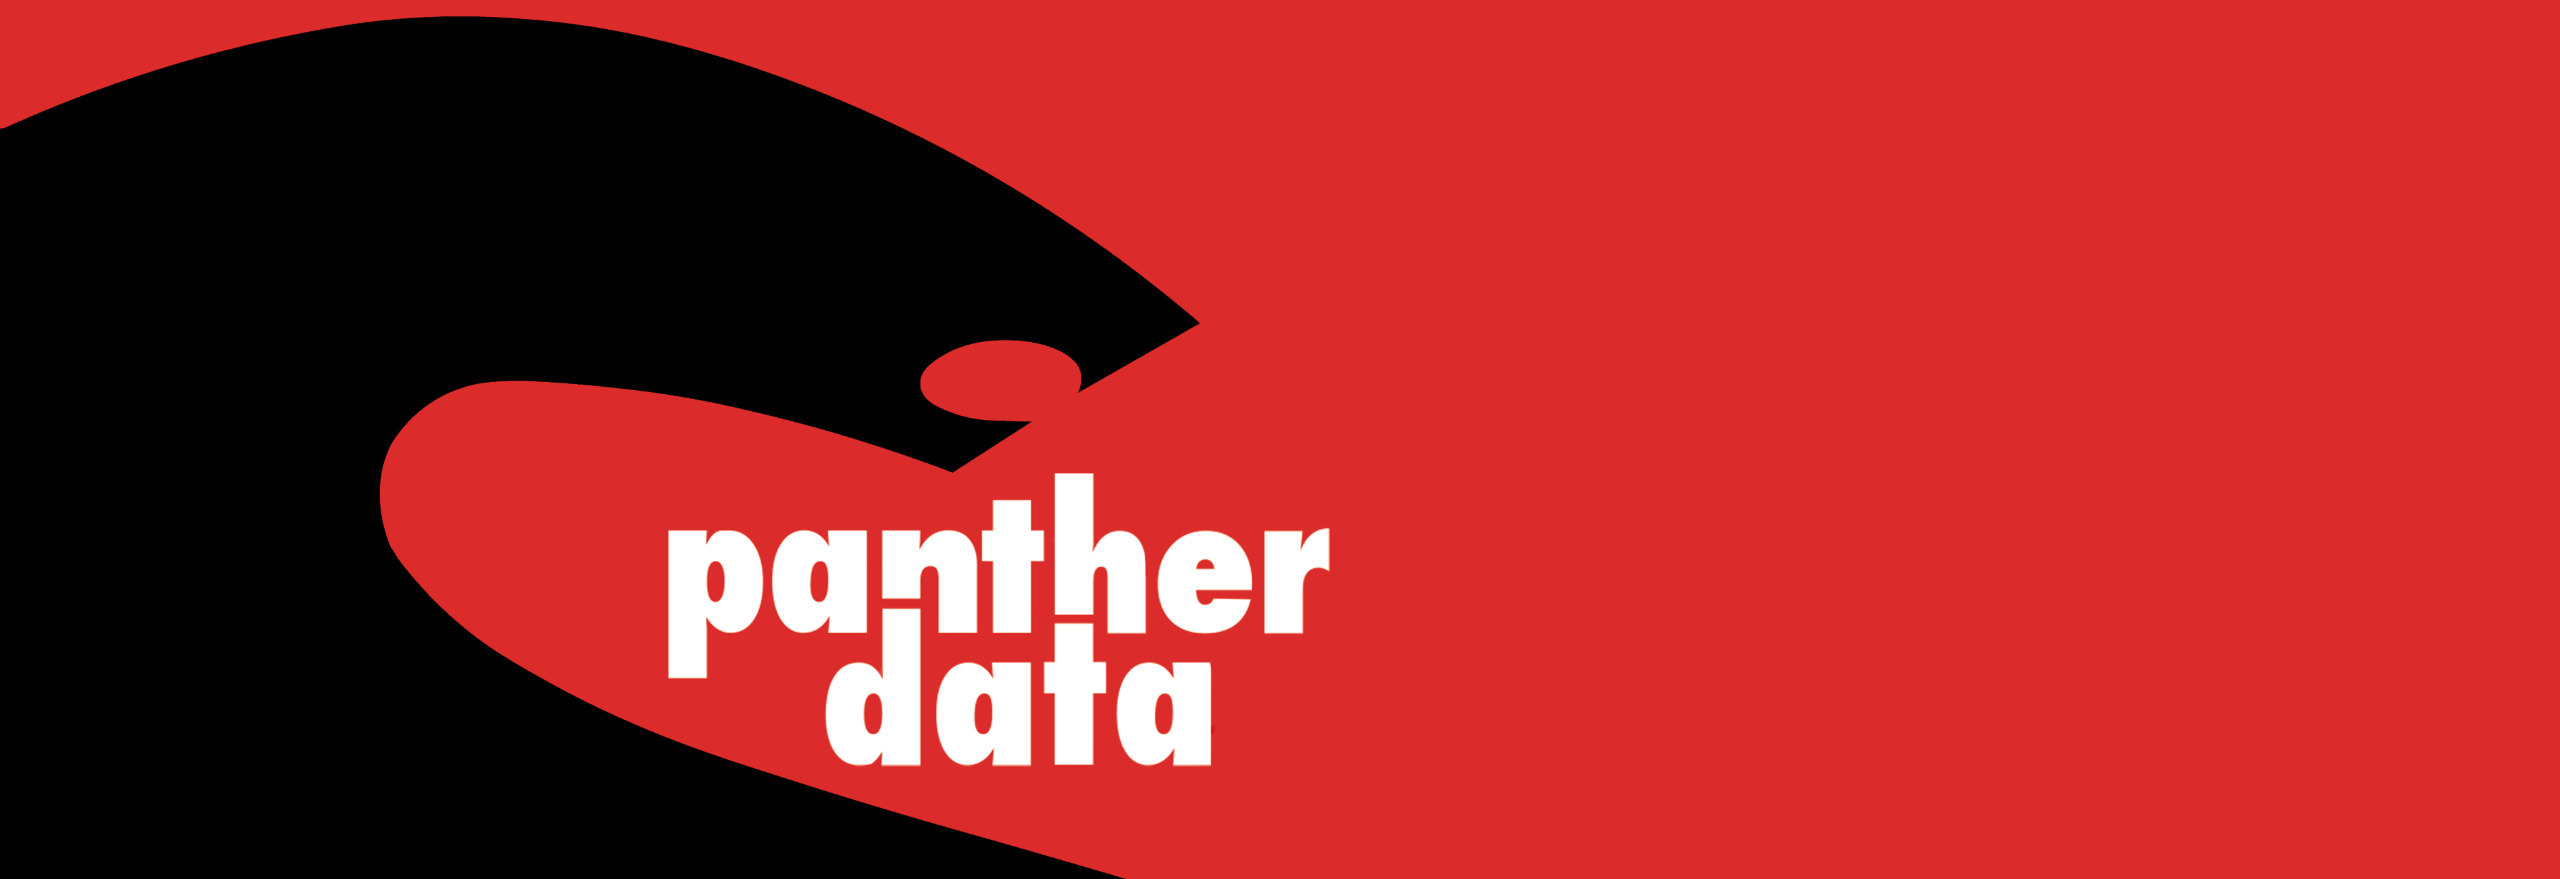 Panther Data (@pantherdata) Cover Image